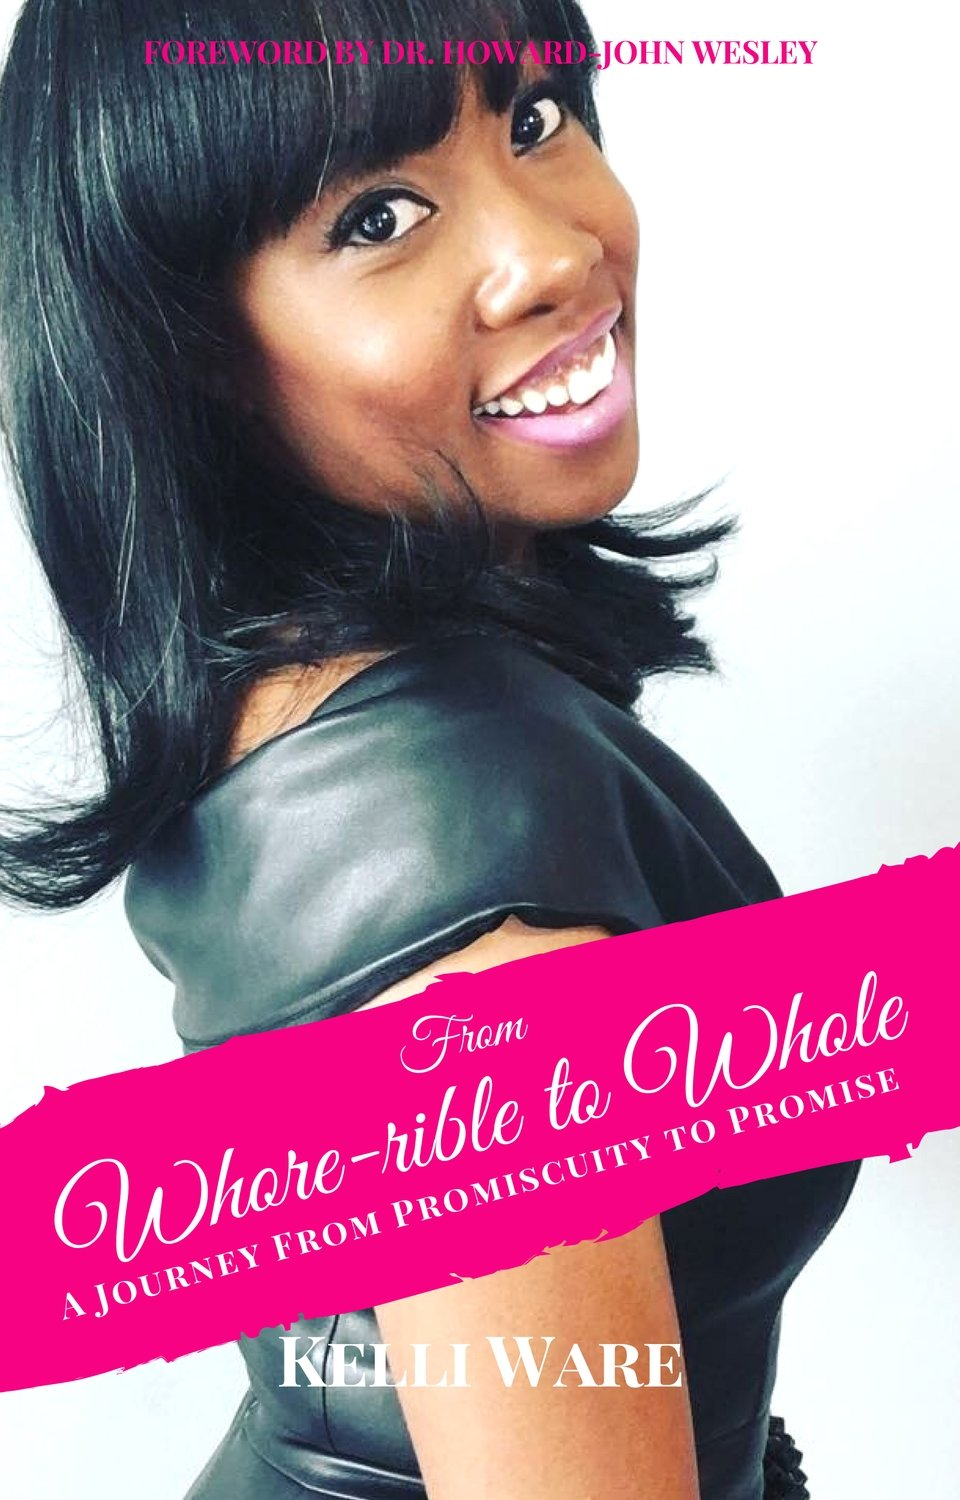 From Whore-rible to Whole: A Journey from Promiscuity to Promise (Hardcover)